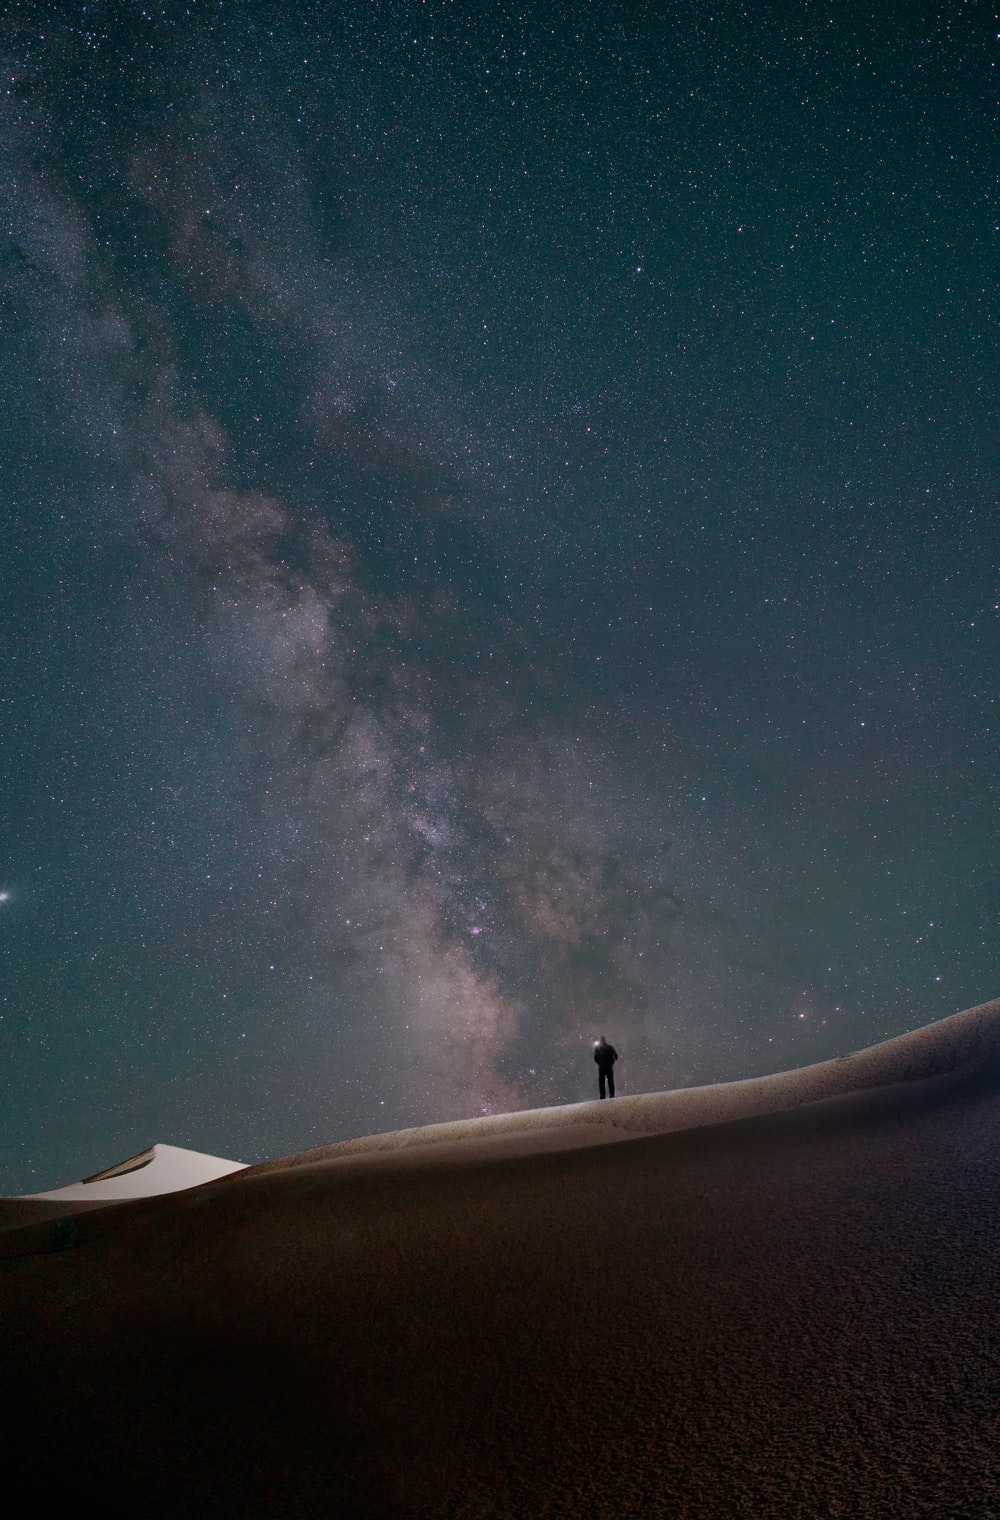 silhouette of person standing on roof under starry night